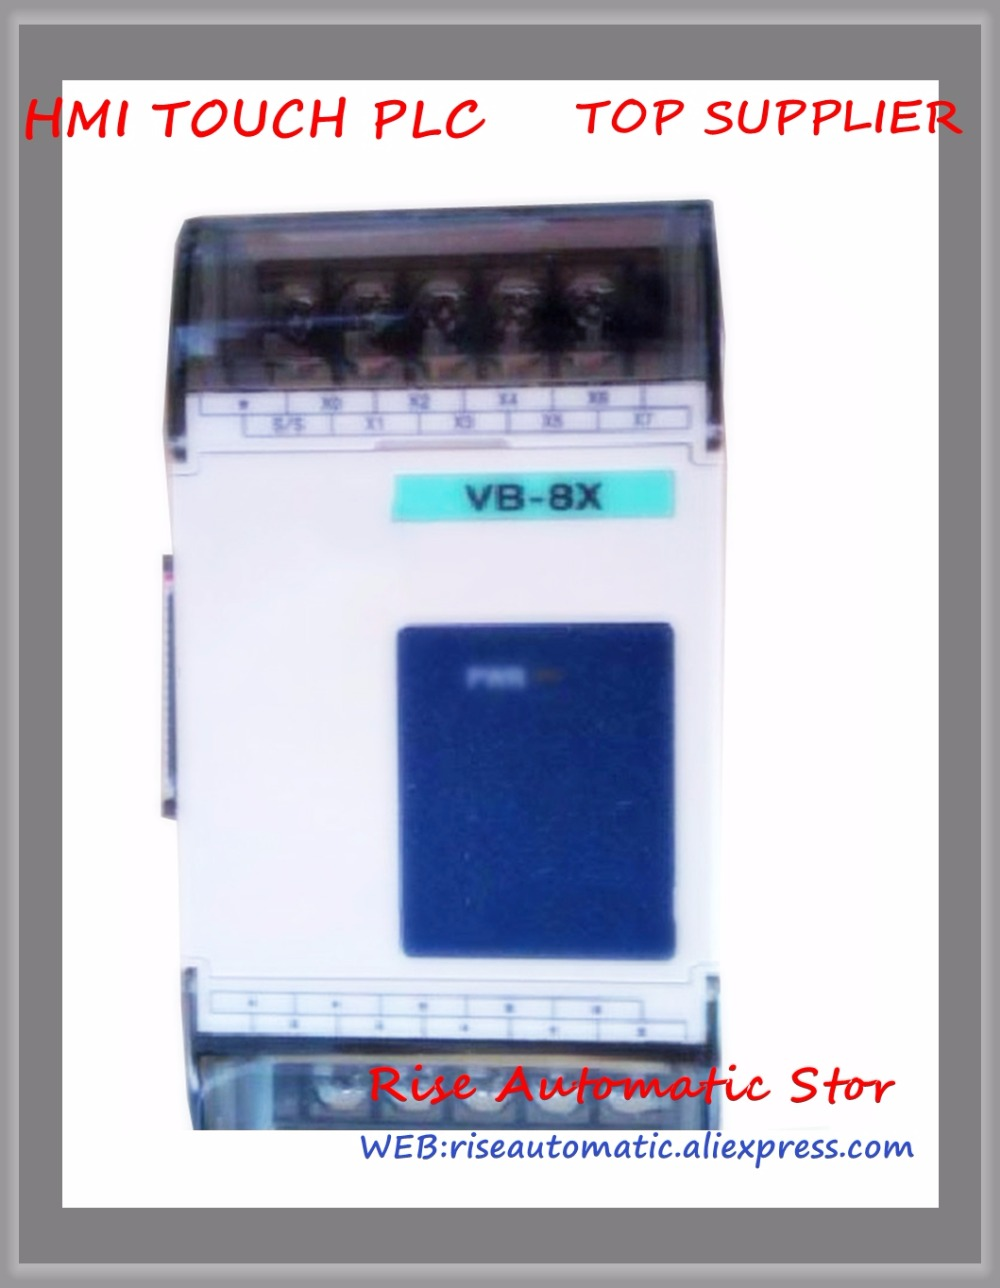 VB-8X PLC New Original 24VDC 8 point input Expansion Module стоимость